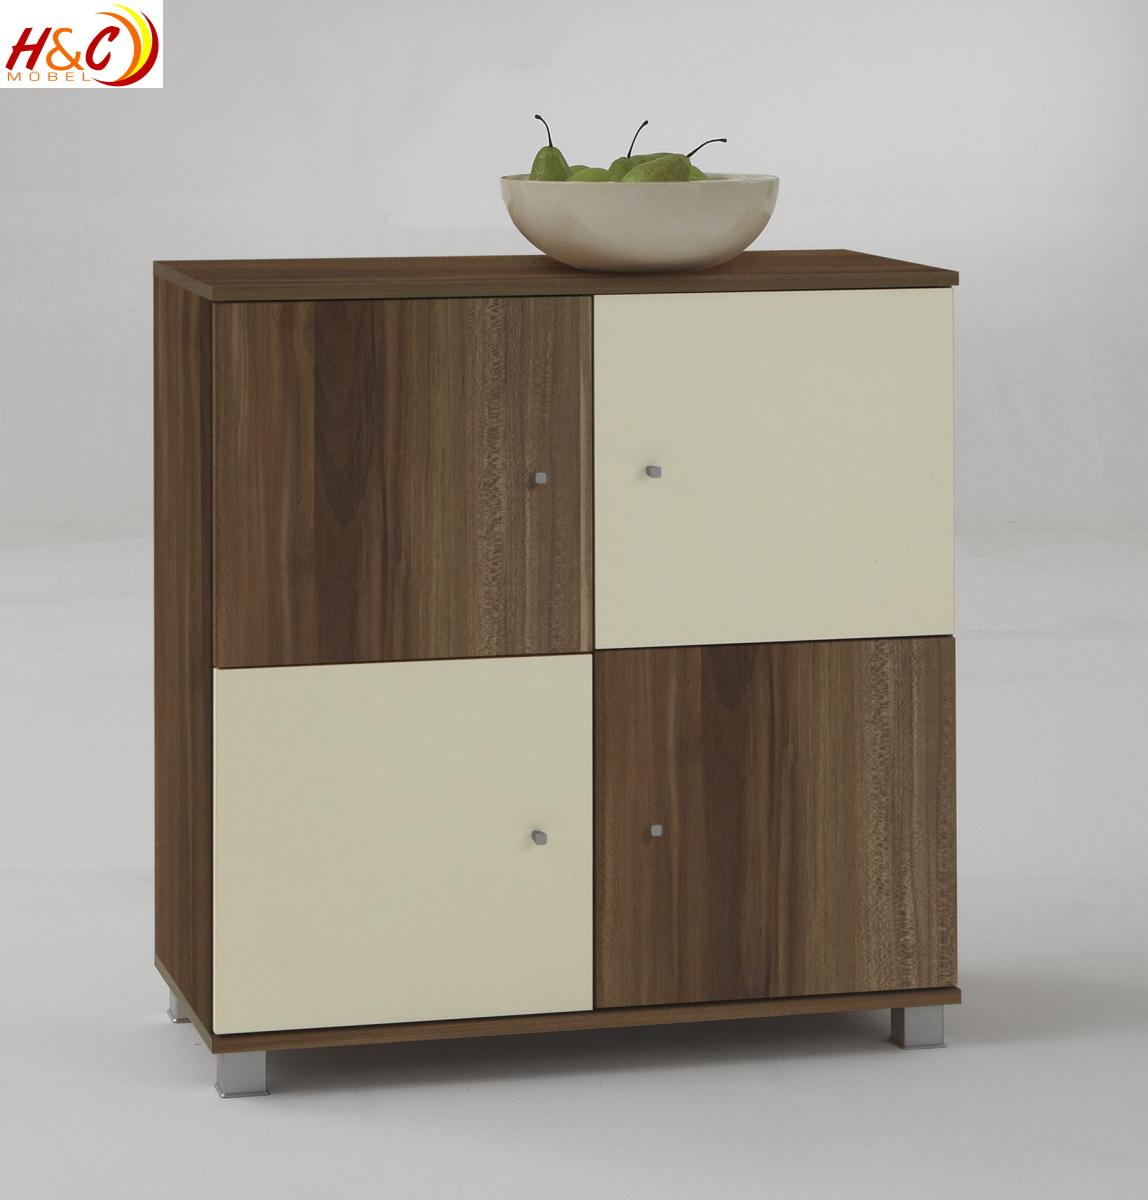 kommode aktenschrank schrank mod k260 nussbaum elfenbein ebay. Black Bedroom Furniture Sets. Home Design Ideas